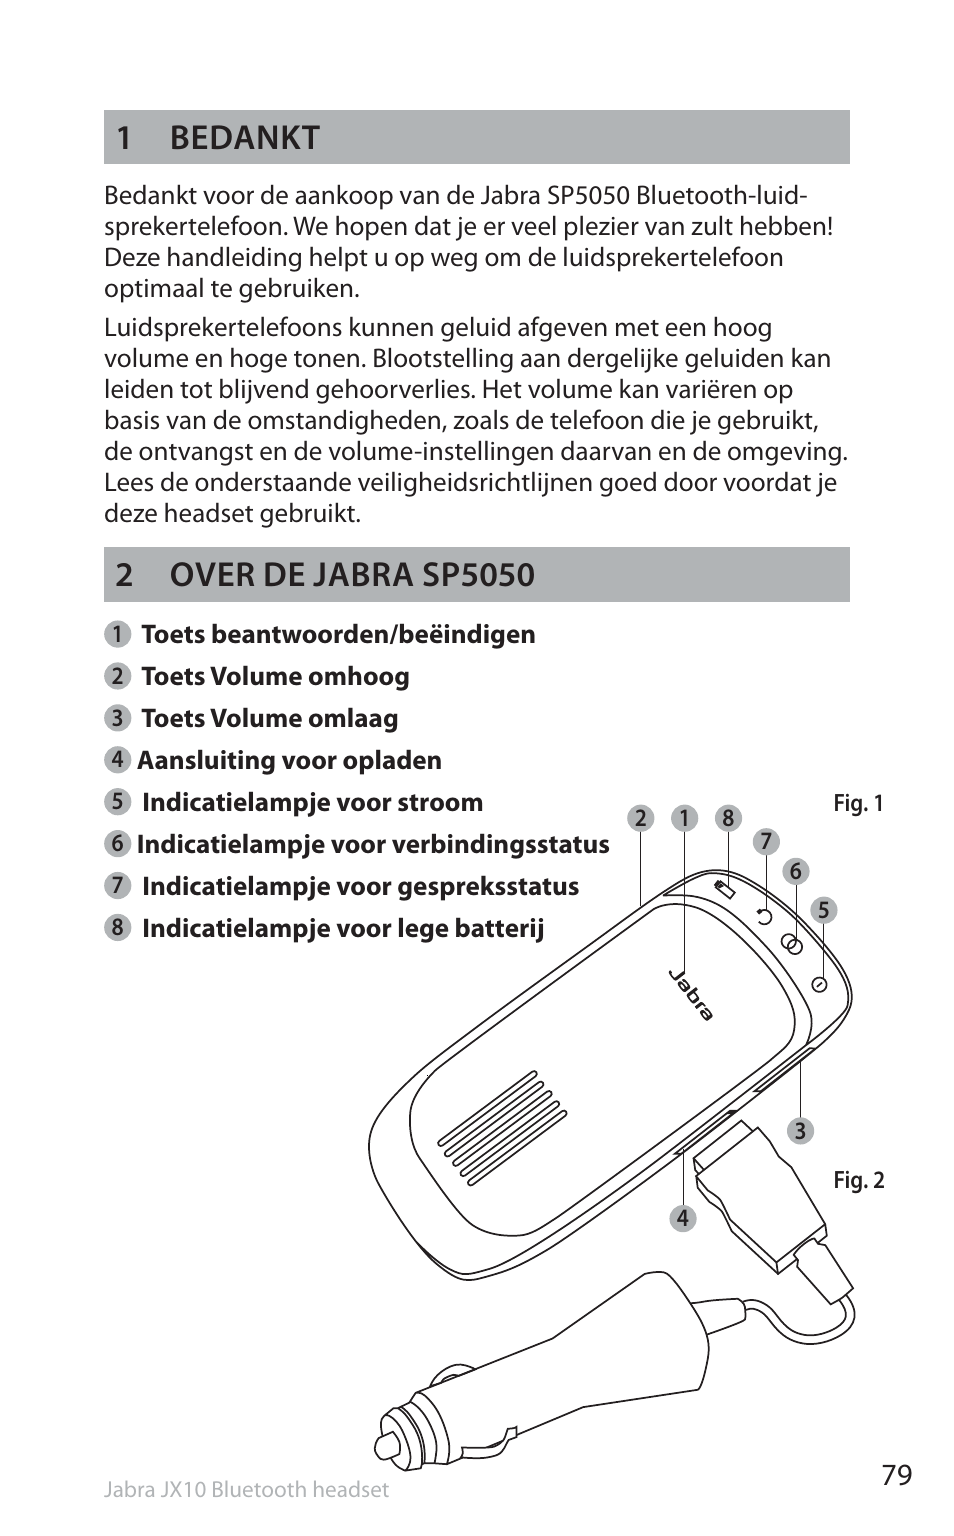 1 bedankt jabra sp5050 user manual page 81 221 original mode rh manualsdir com Jabra Bluetooth Pairing Guide Jabra SP5050 Charger